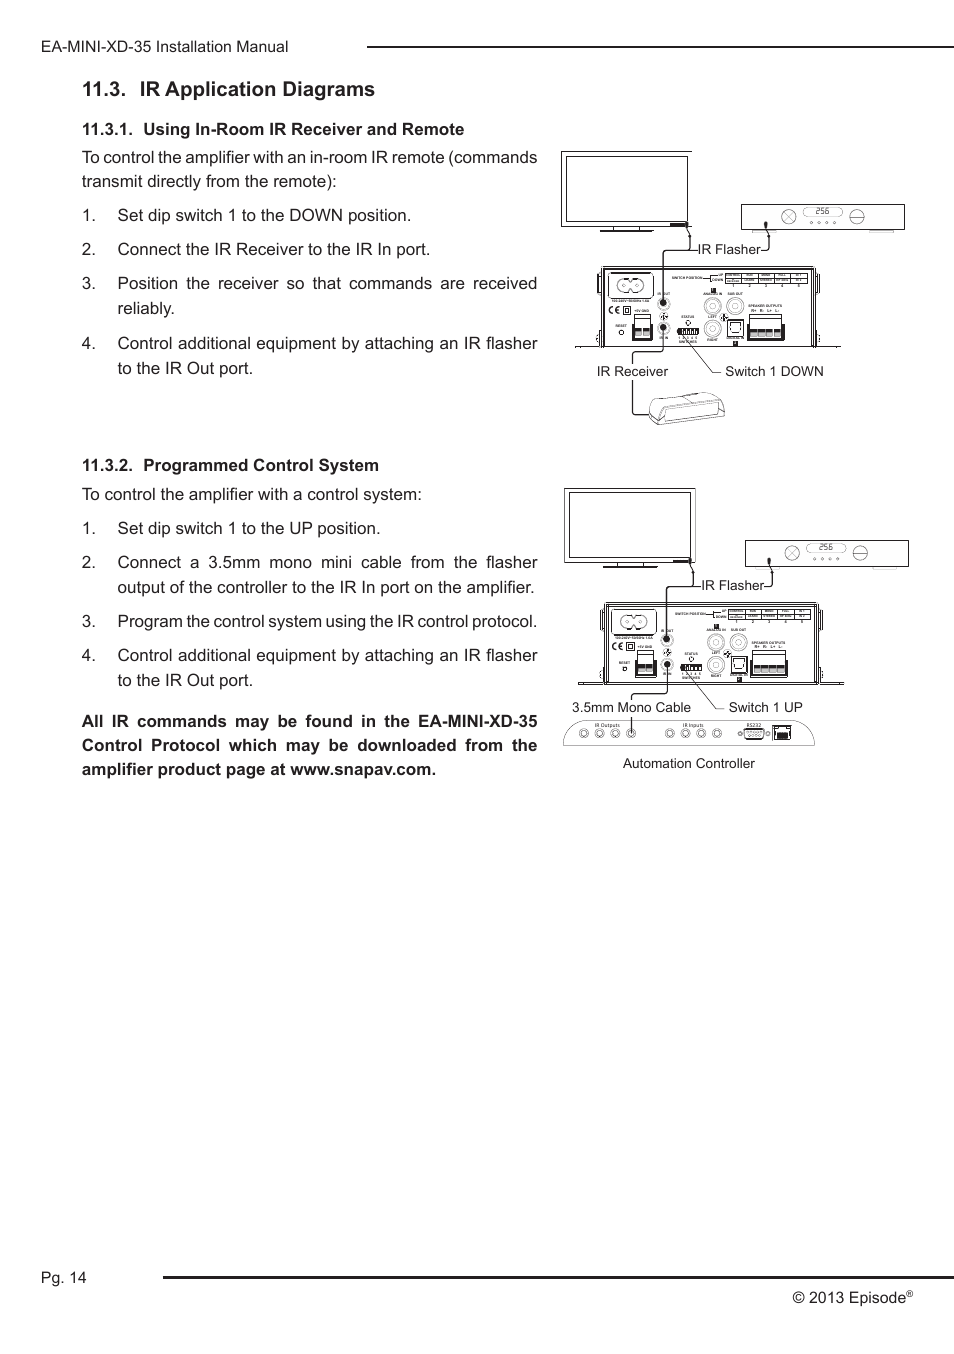 Ir application diagrams, Using in-room ir receiver and remote